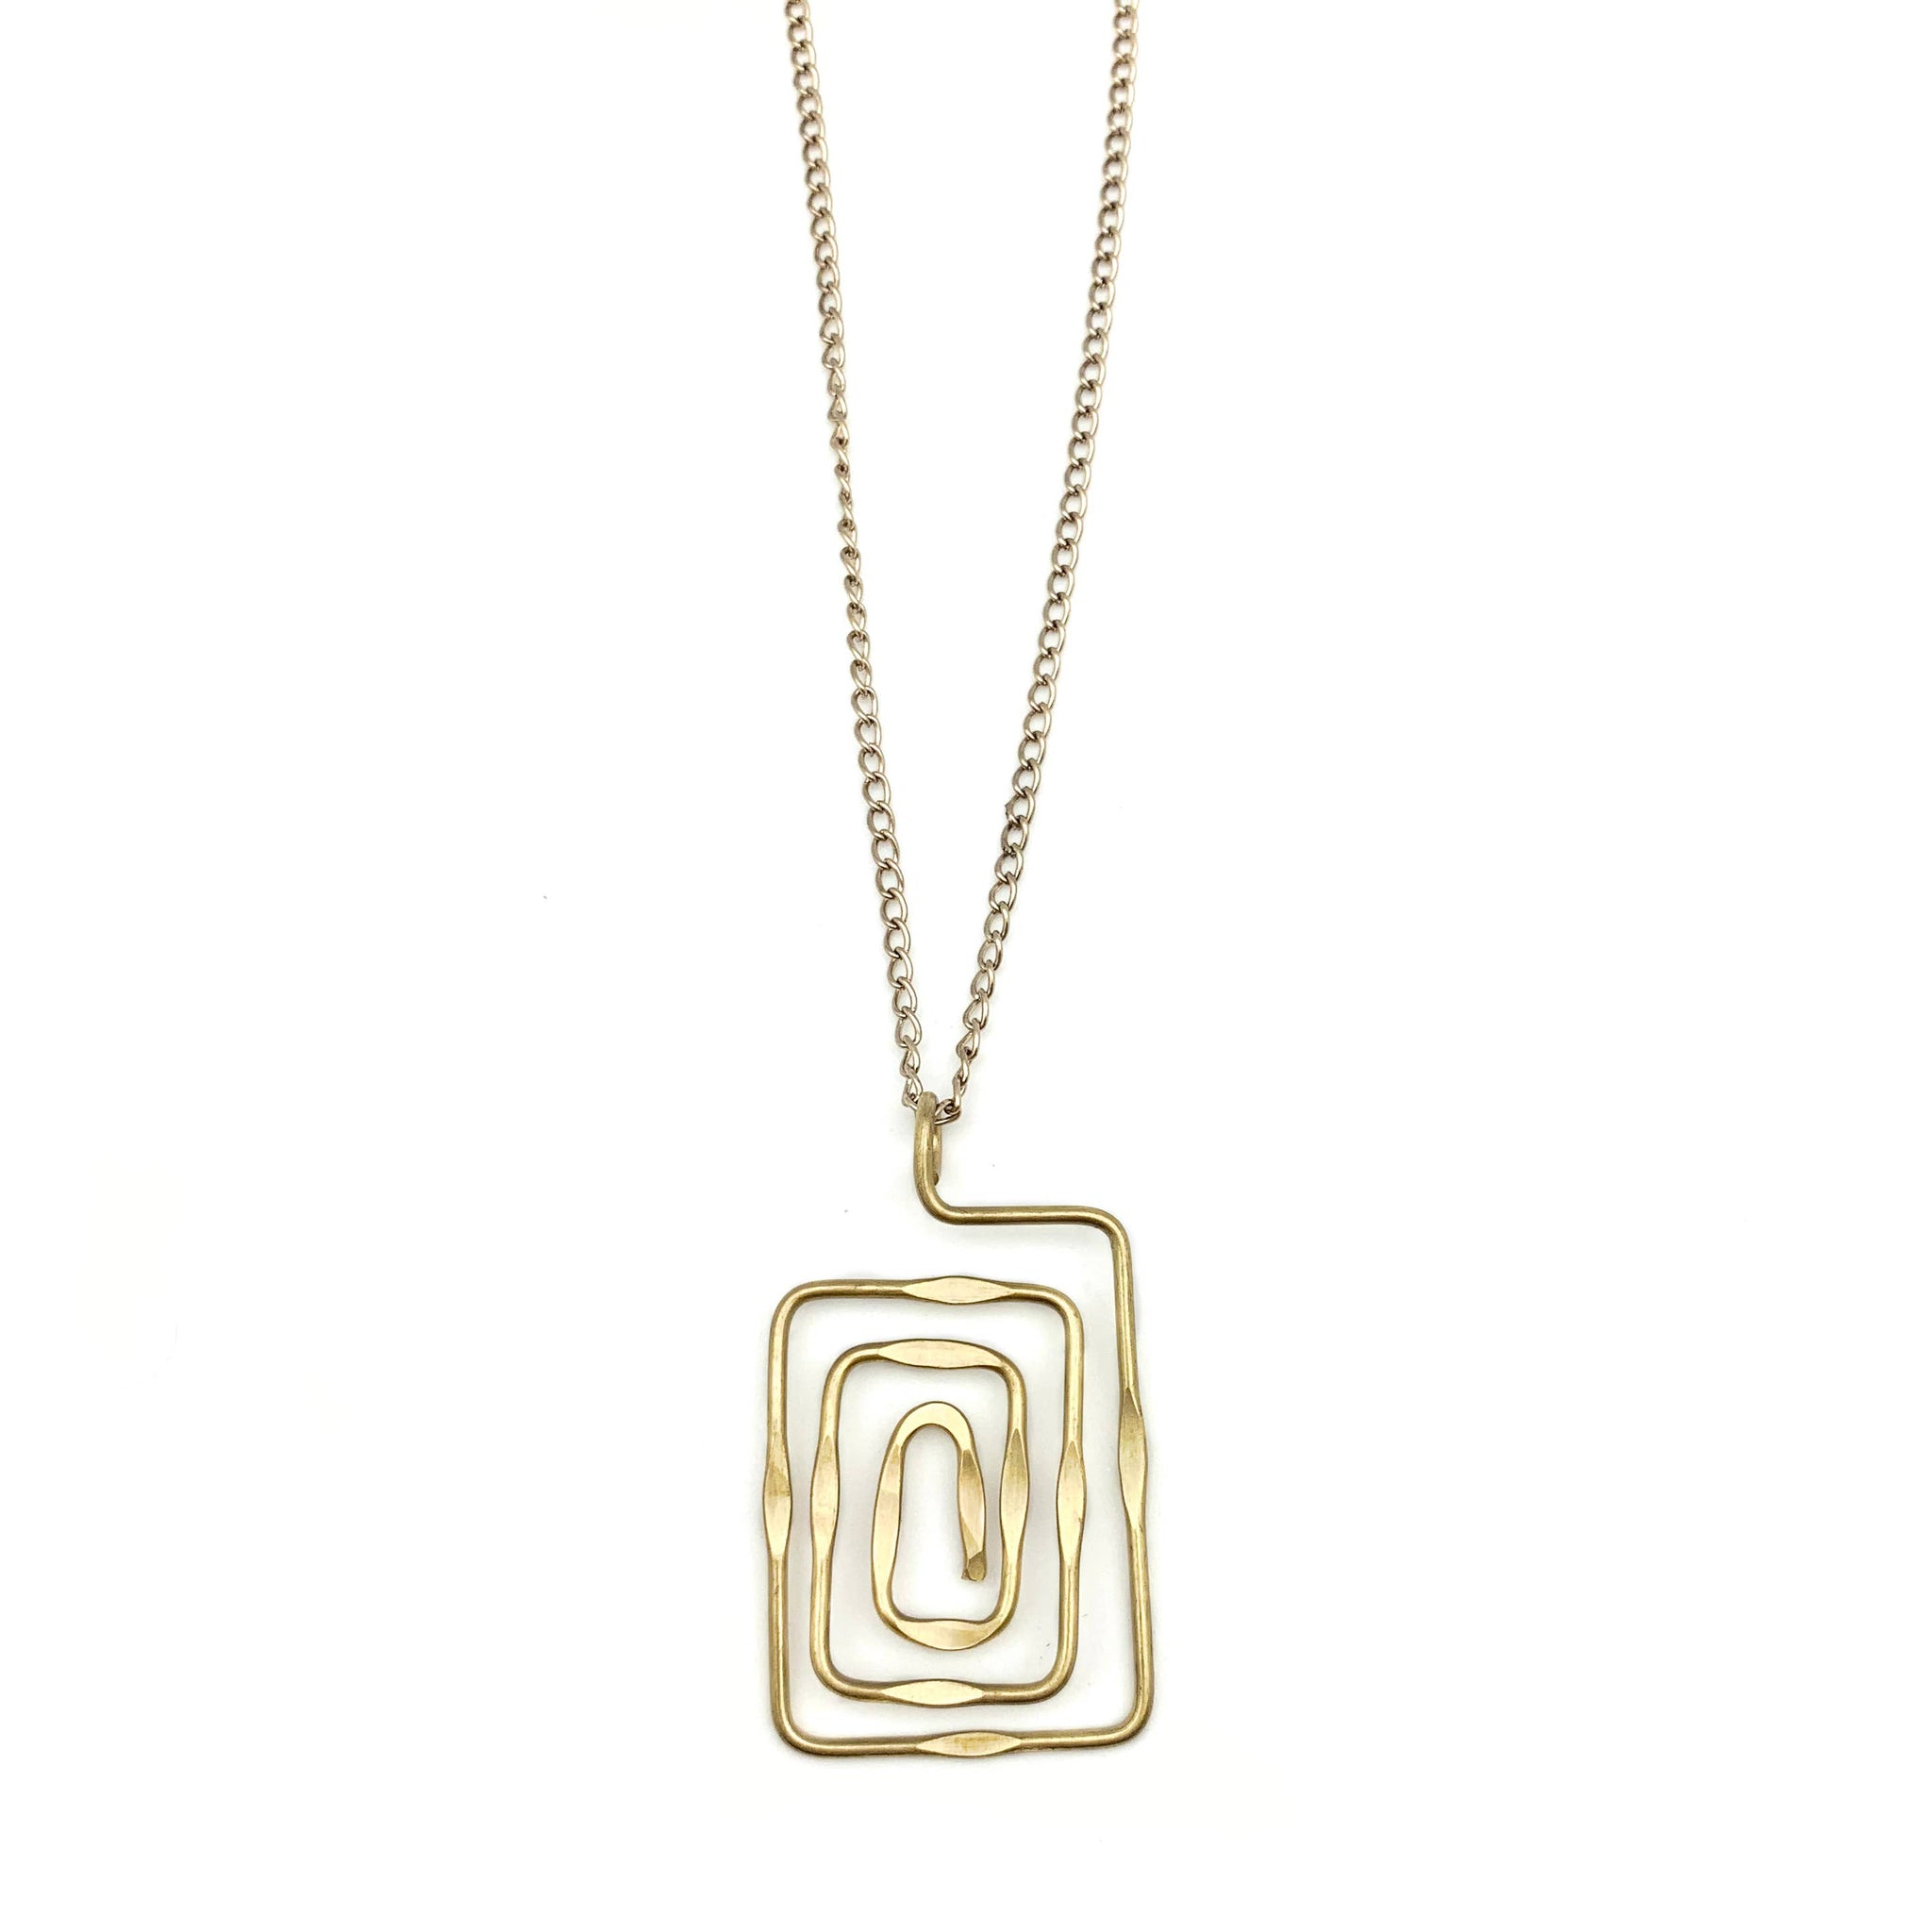 Gold Plated Pendant Necklace - Rectangular Spiral